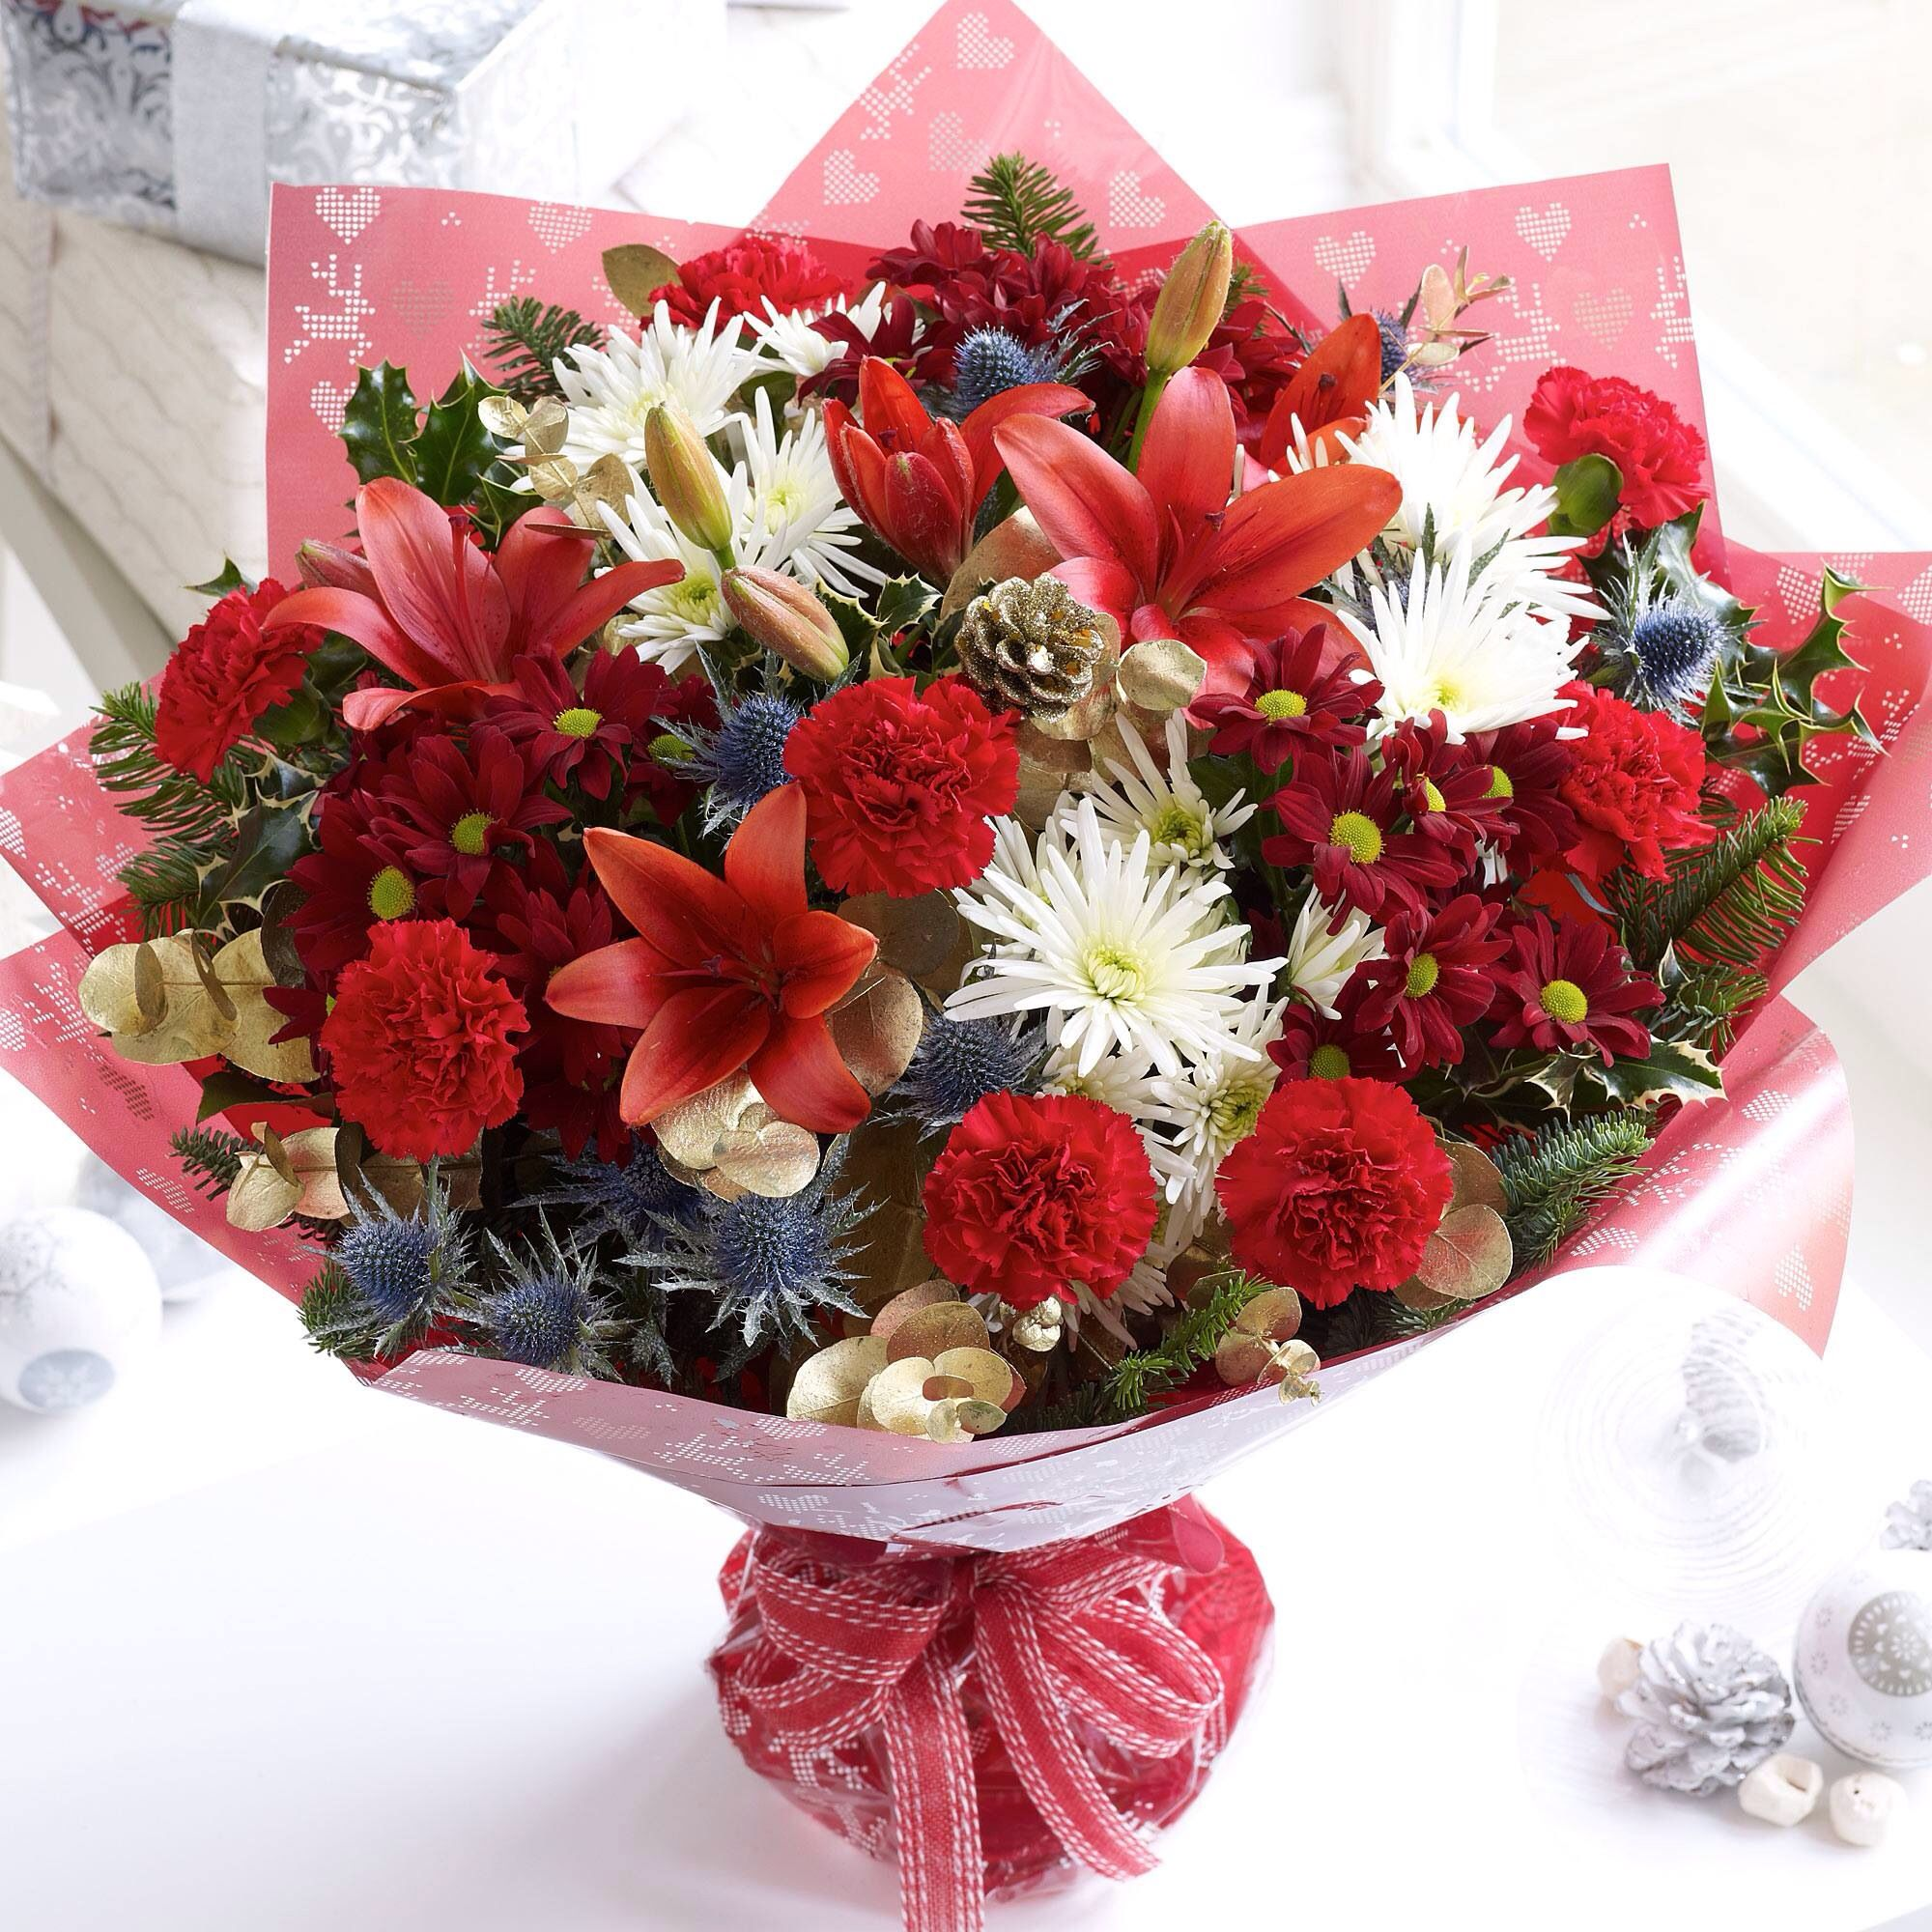 Pin by carolang32 on Flowers Flowers direct, Christmas